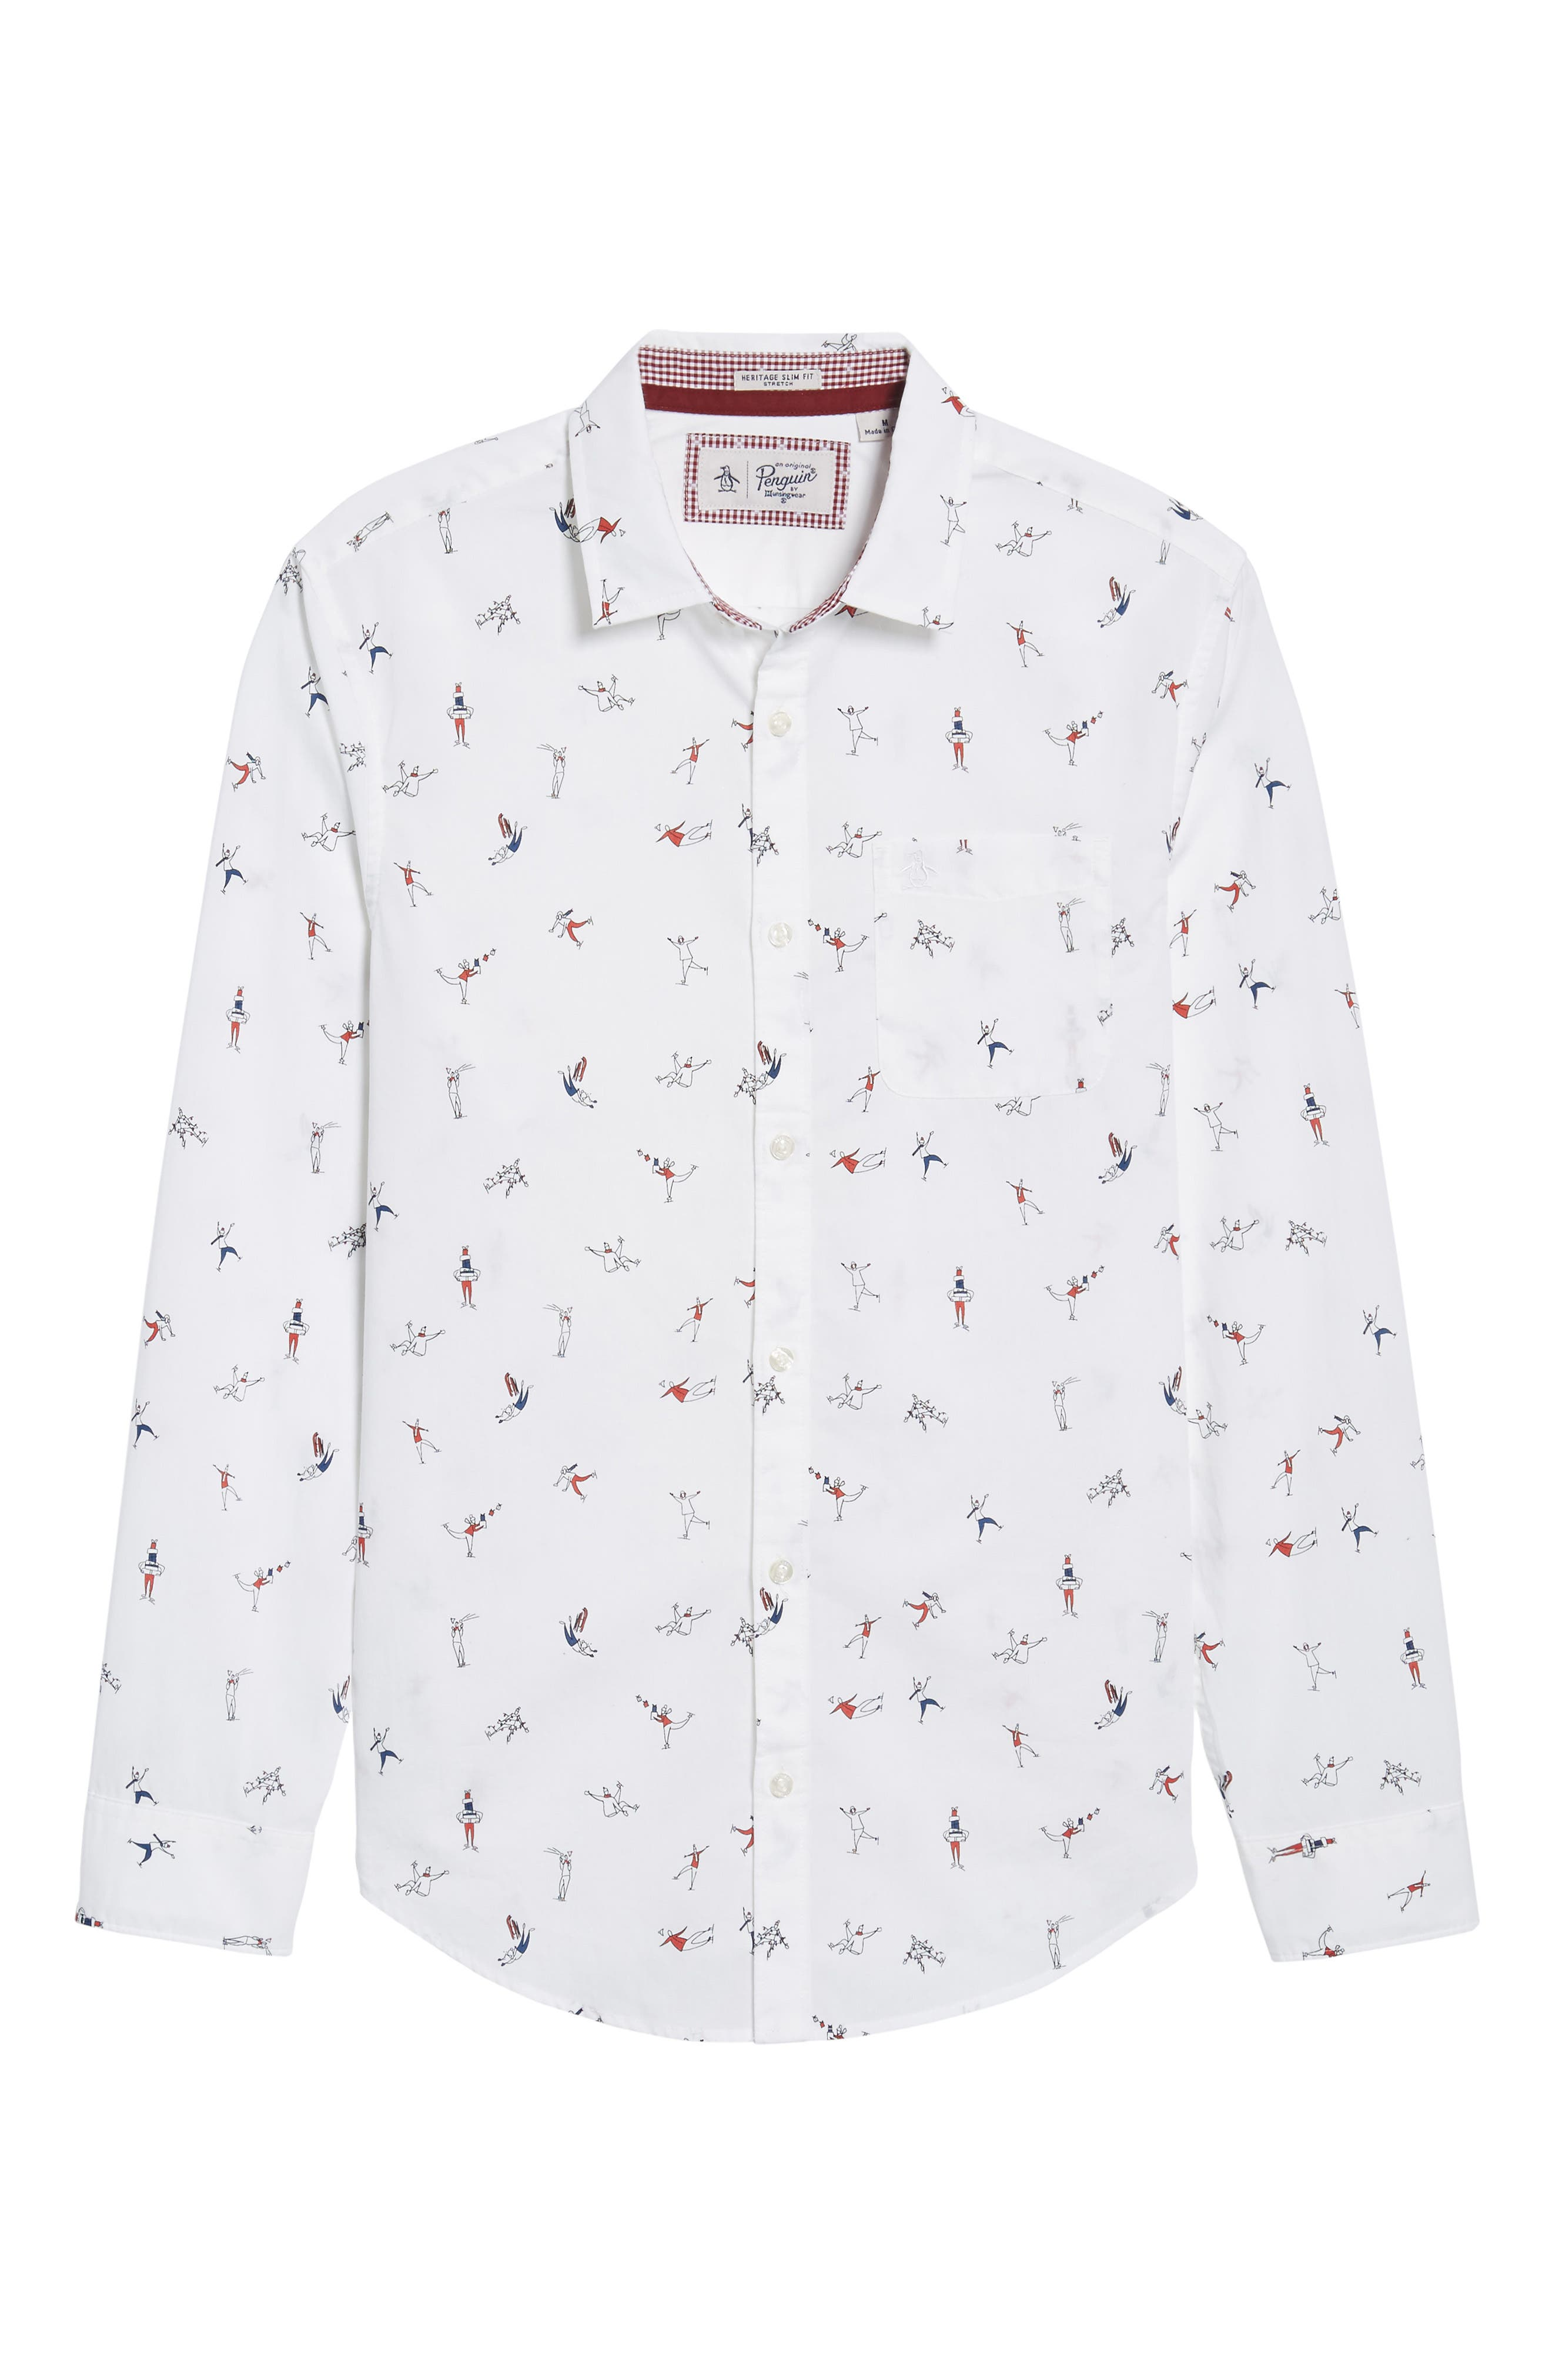 Clumsy Skaters Poplin Shirt,                             Alternate thumbnail 6, color,                             Bright White